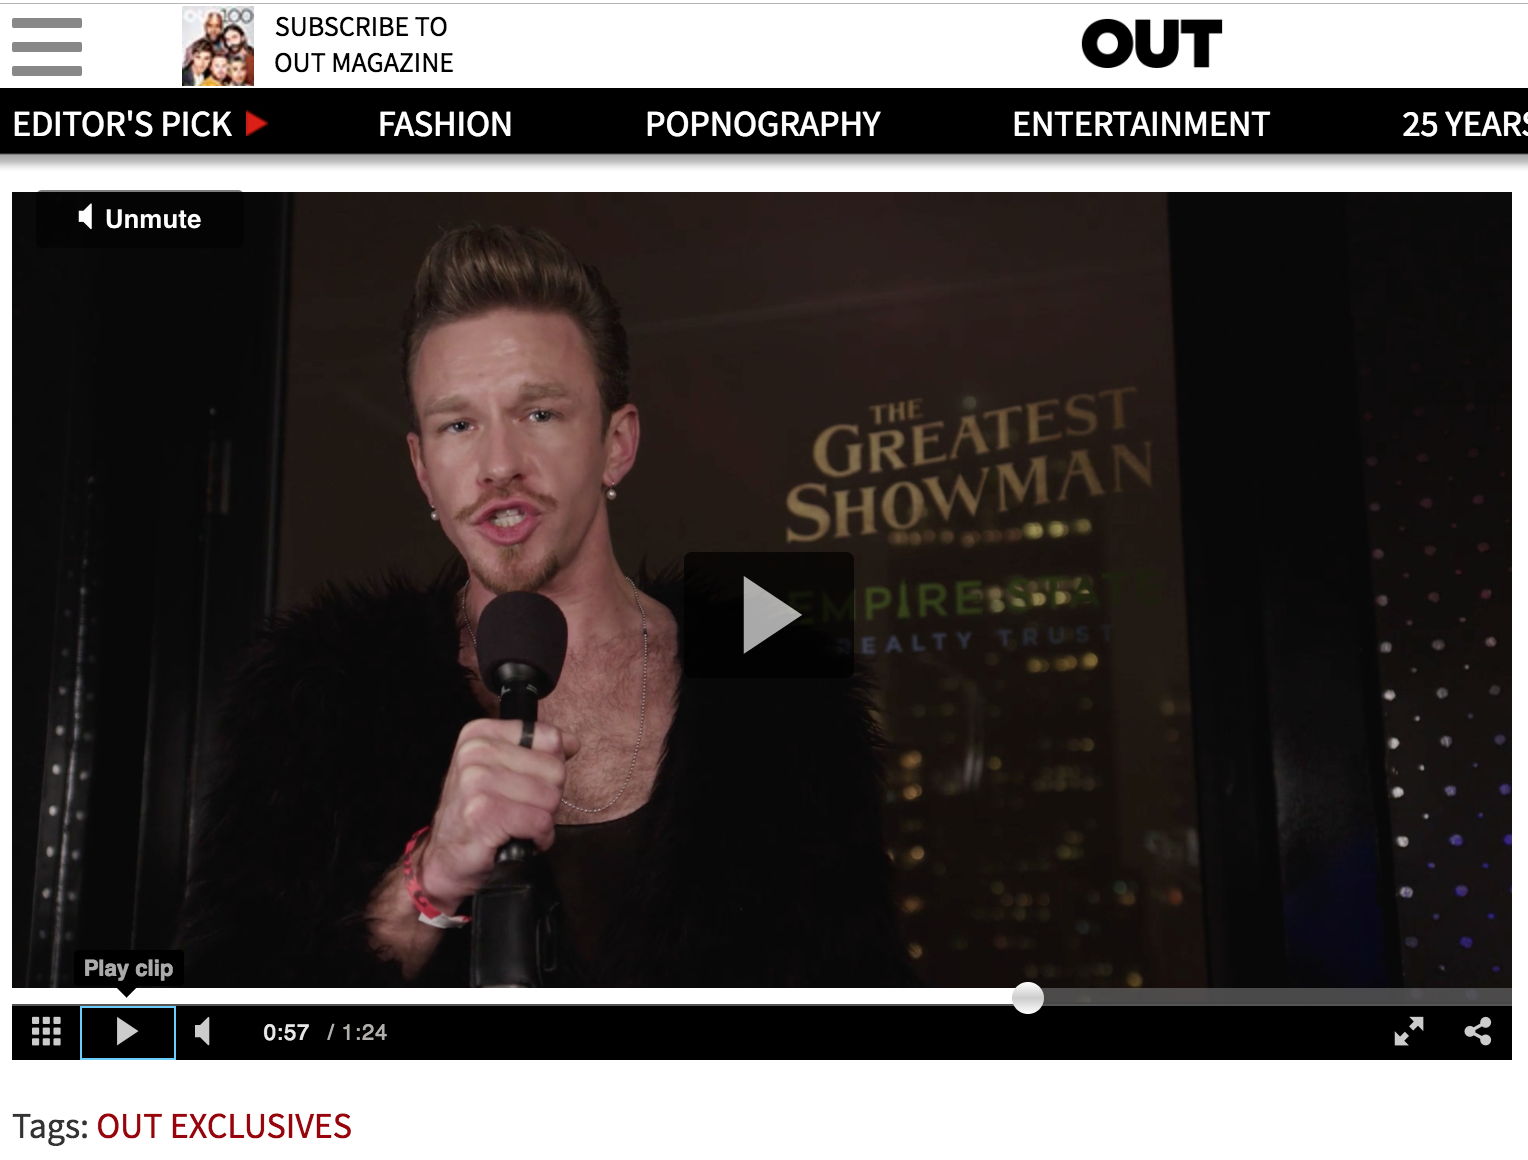 OUT  COVERAGE OF  THE GREATEST SHOWMAN  EVENT   (LIVE VIDEO SEGMENT)   I report live from a New York premiere event for the musical Oscar contender  The Greatest Showman .